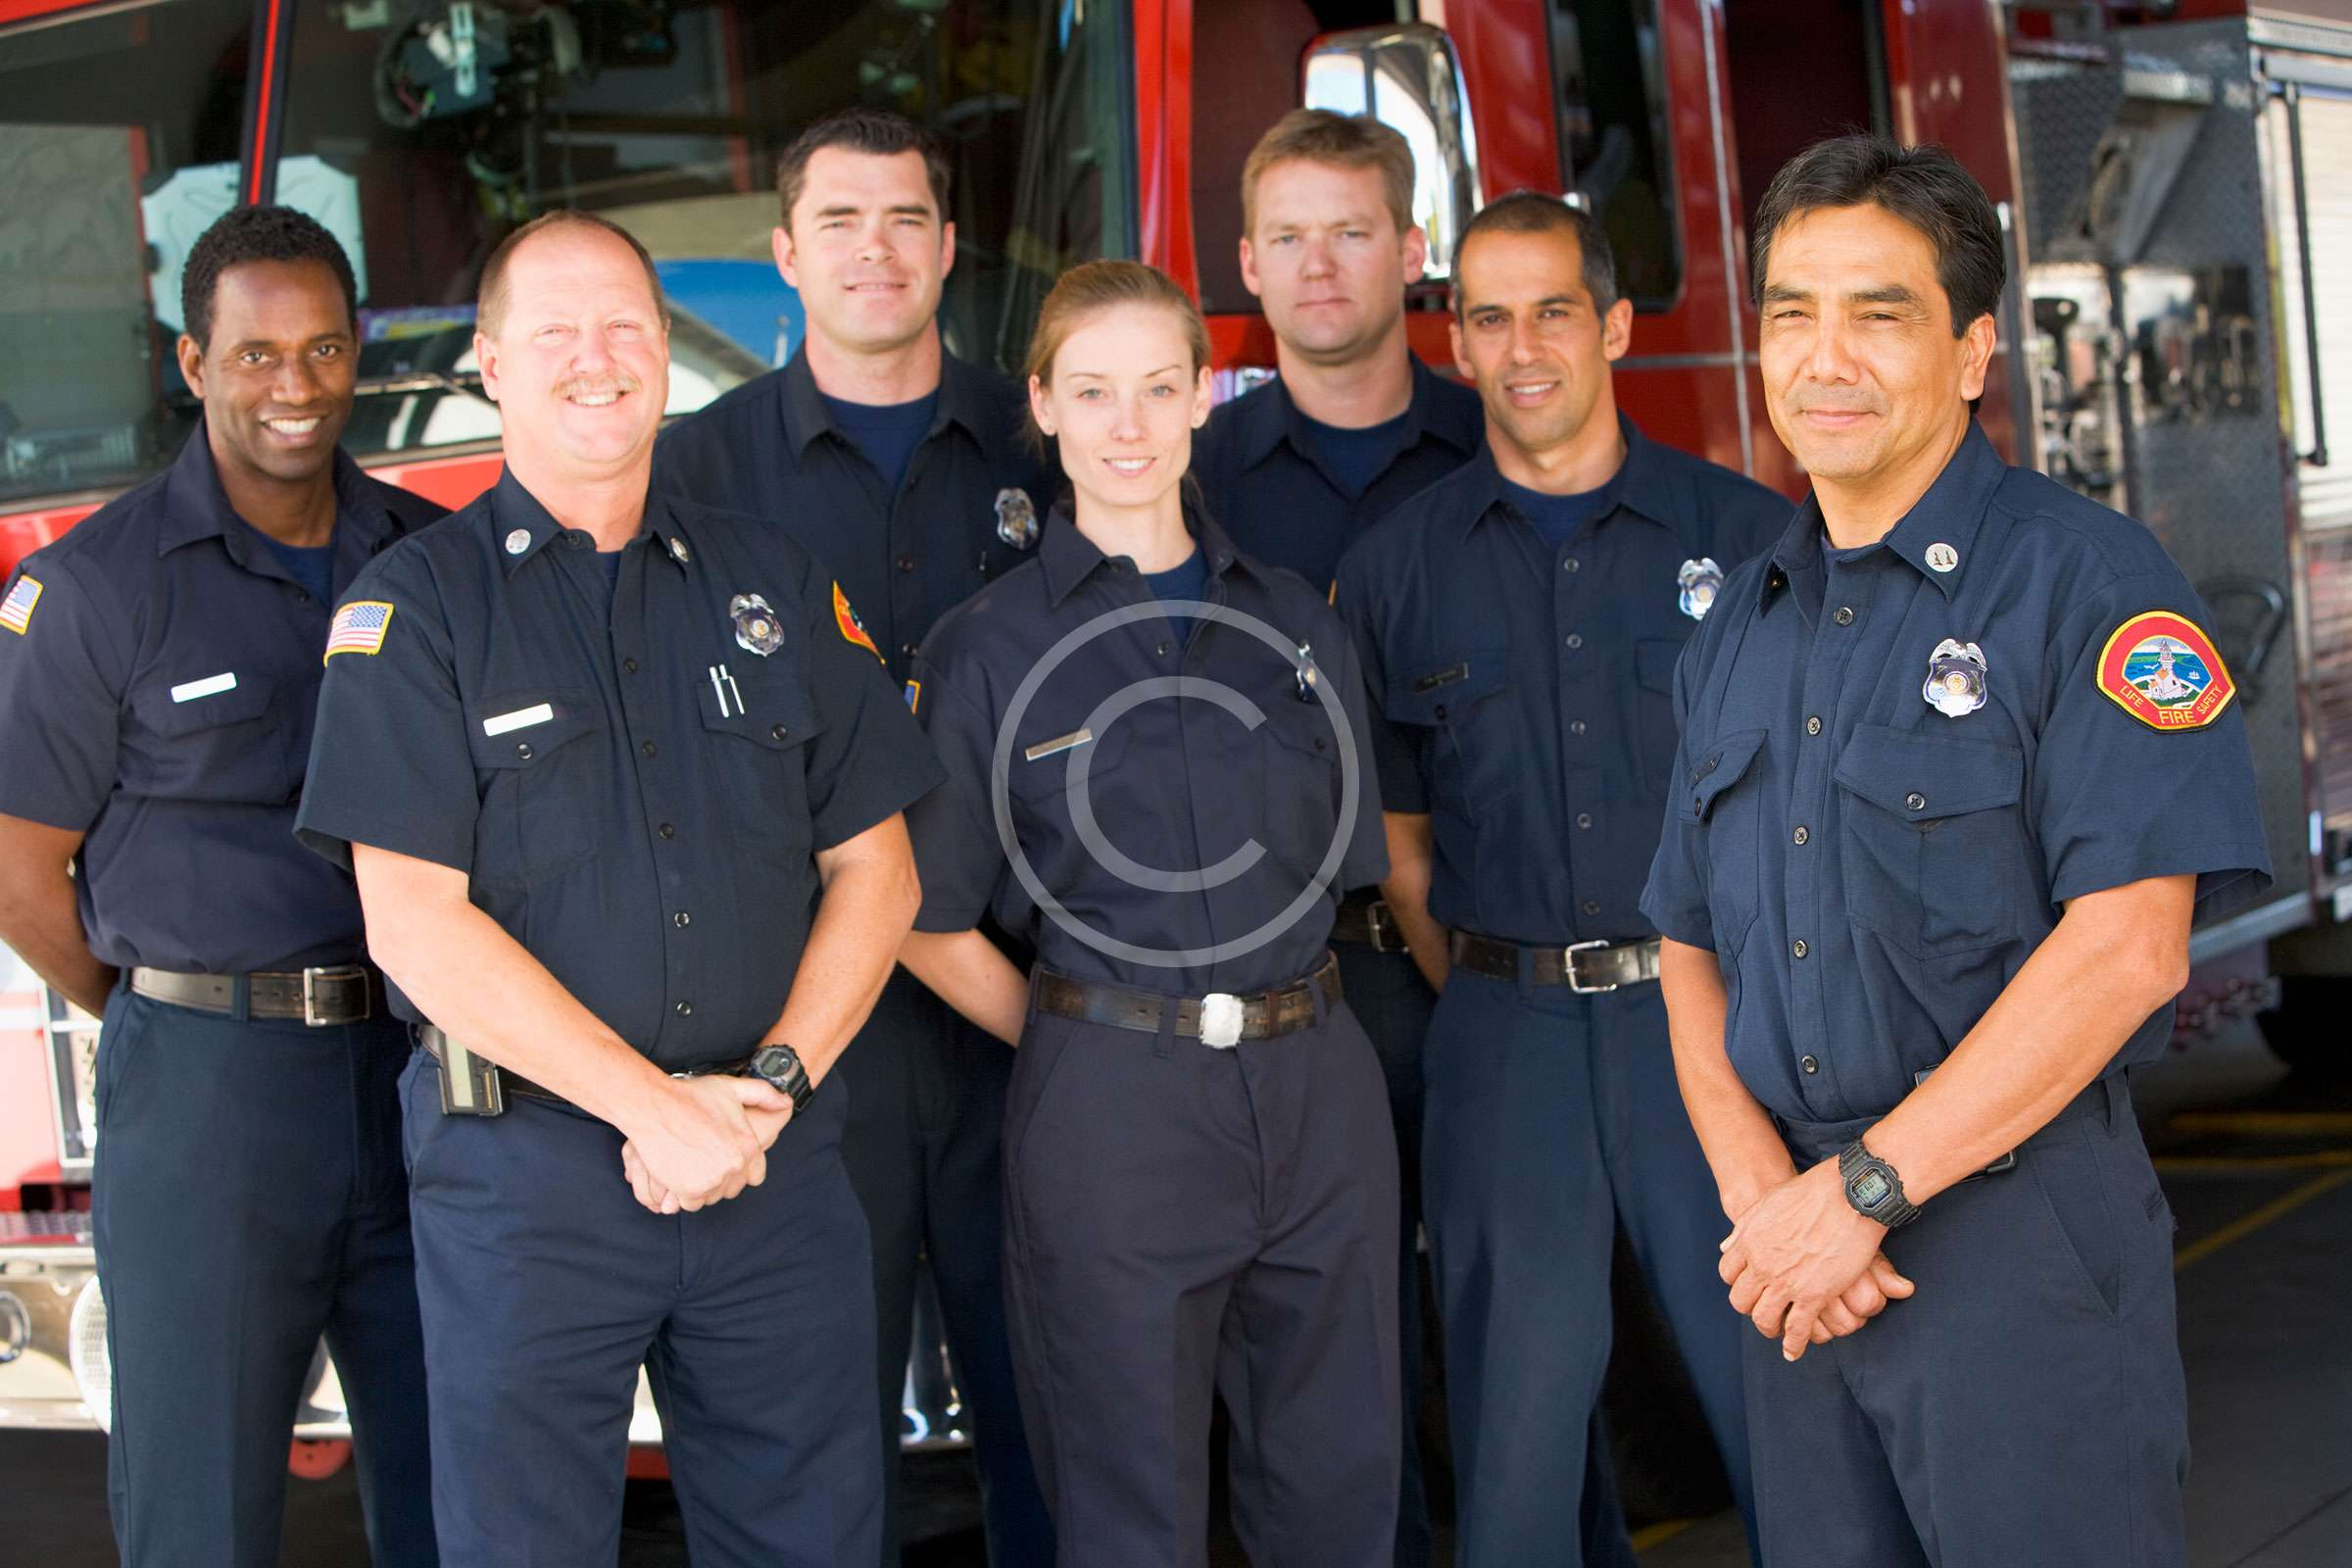 Revitalize Your Fire Station With 5 DIY Projects